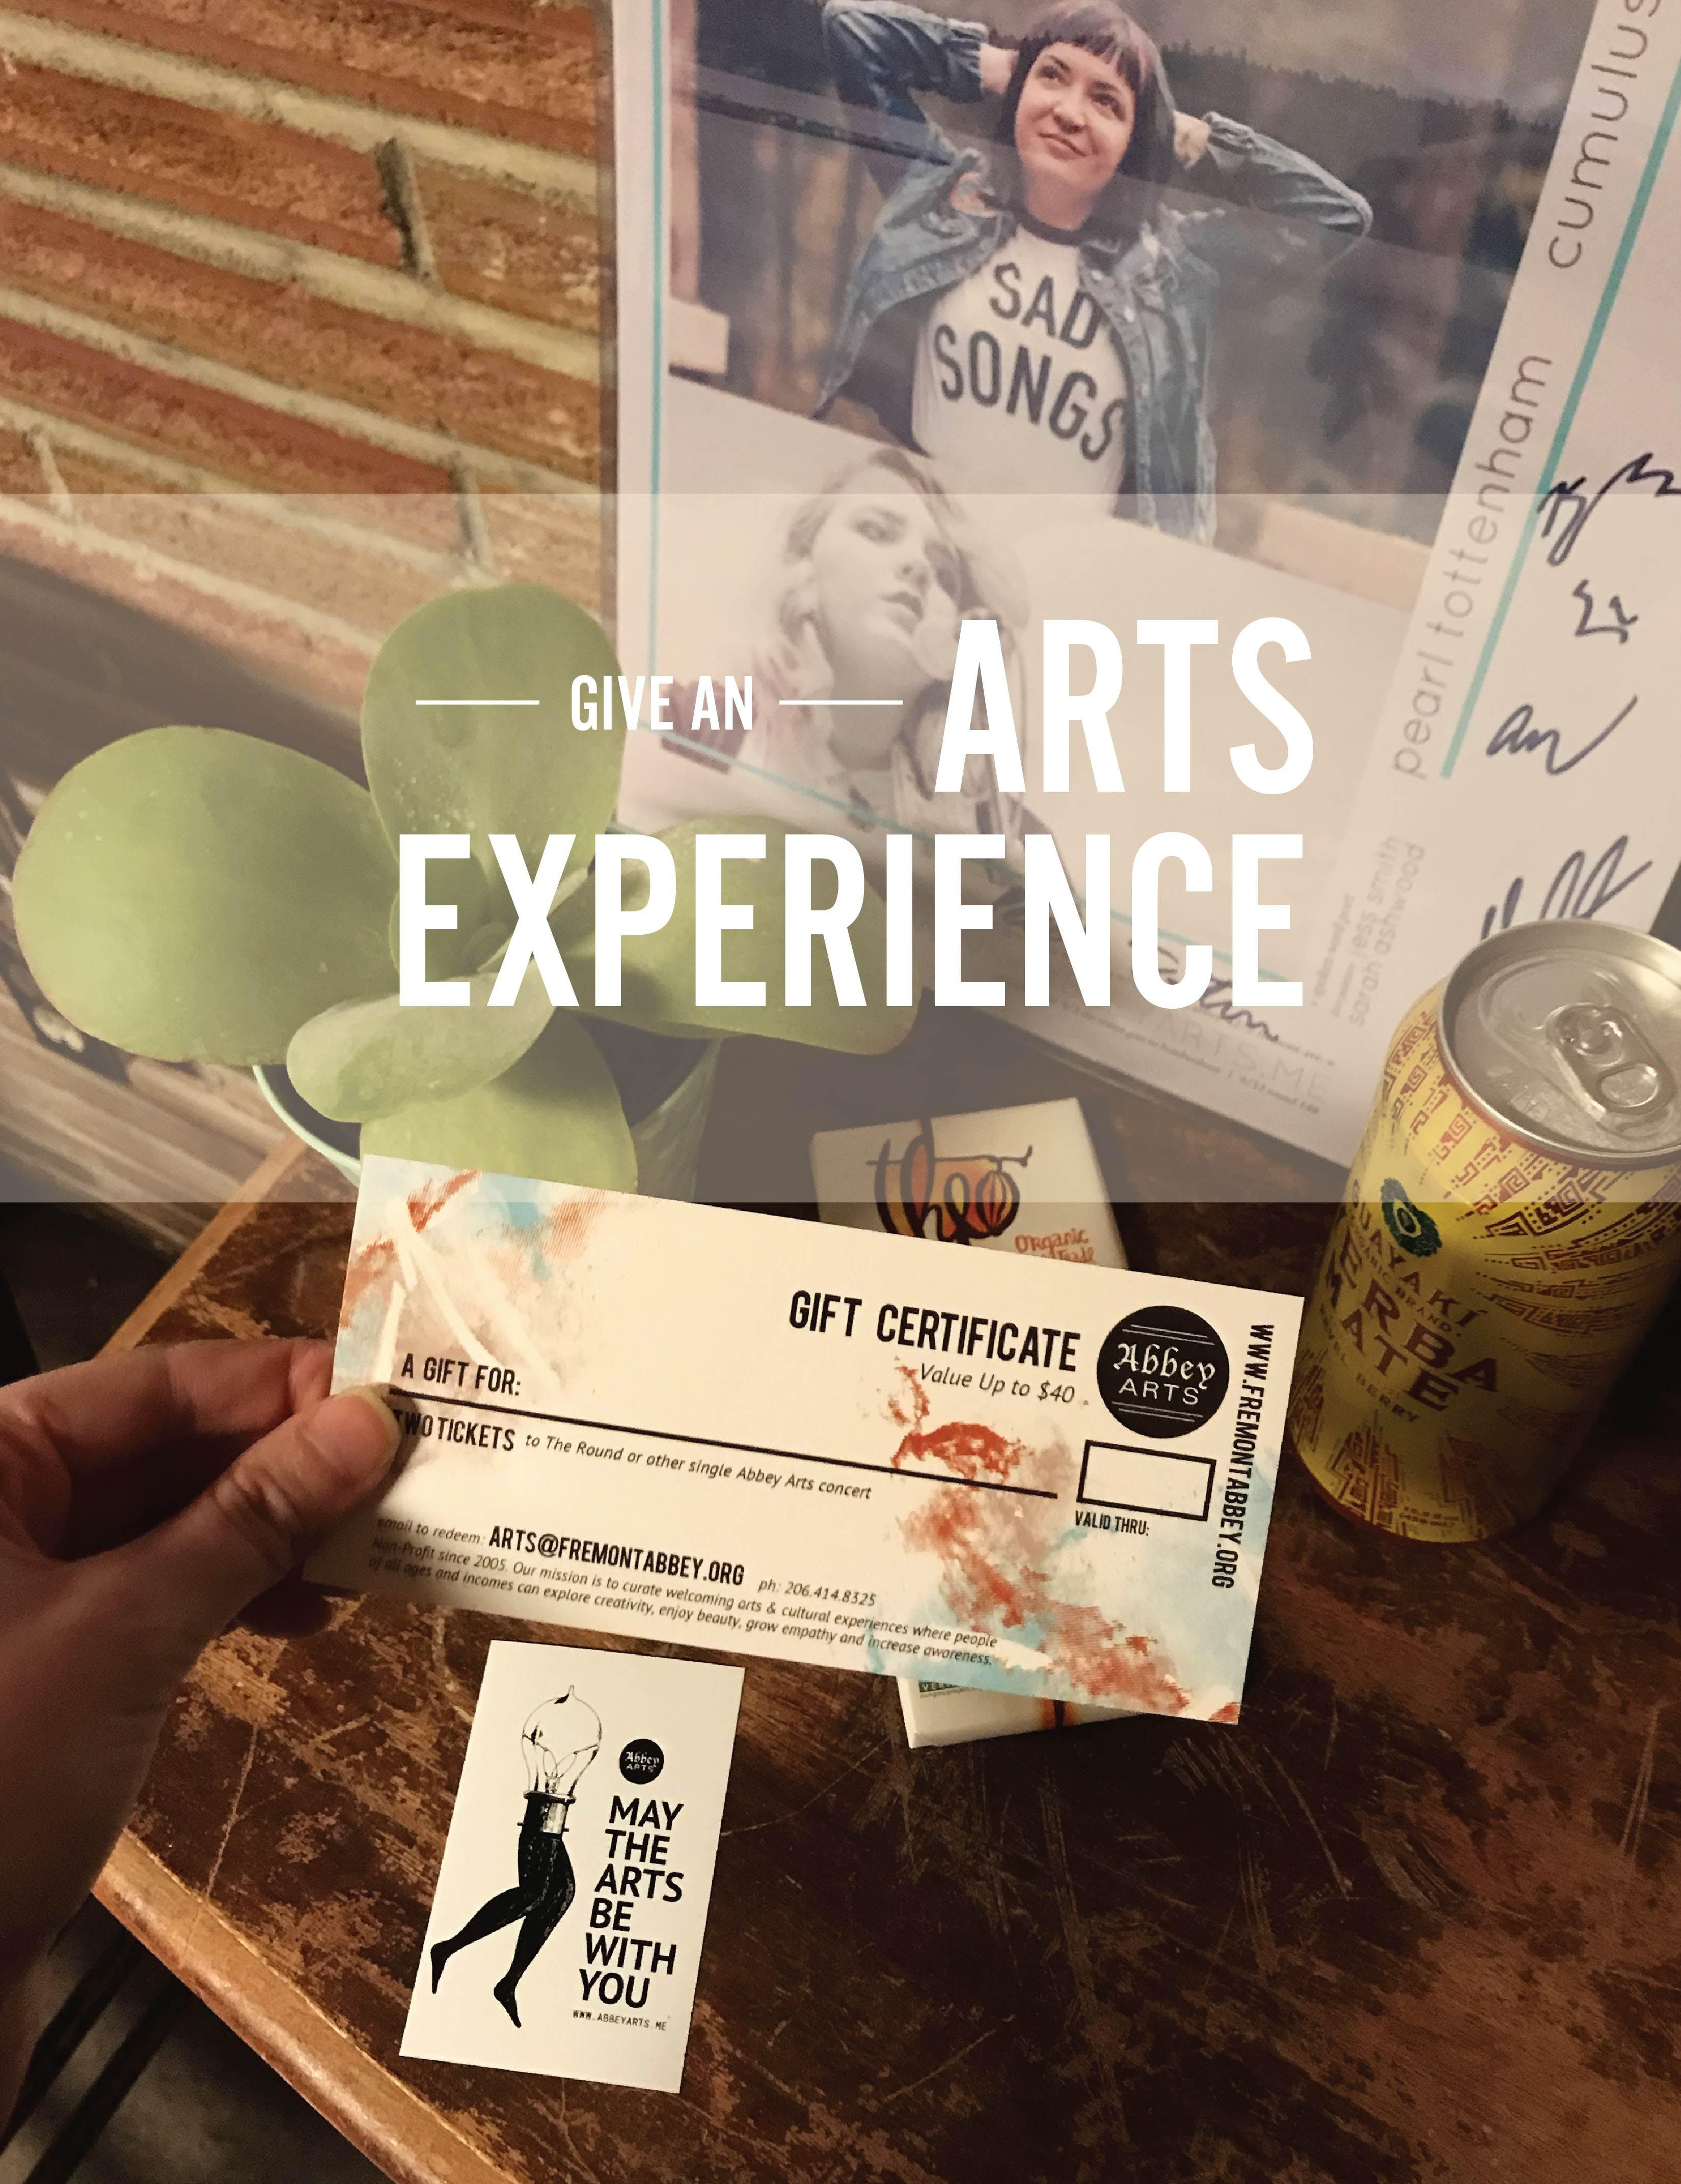 Arts Experience Gift Certificate Concert Tickets